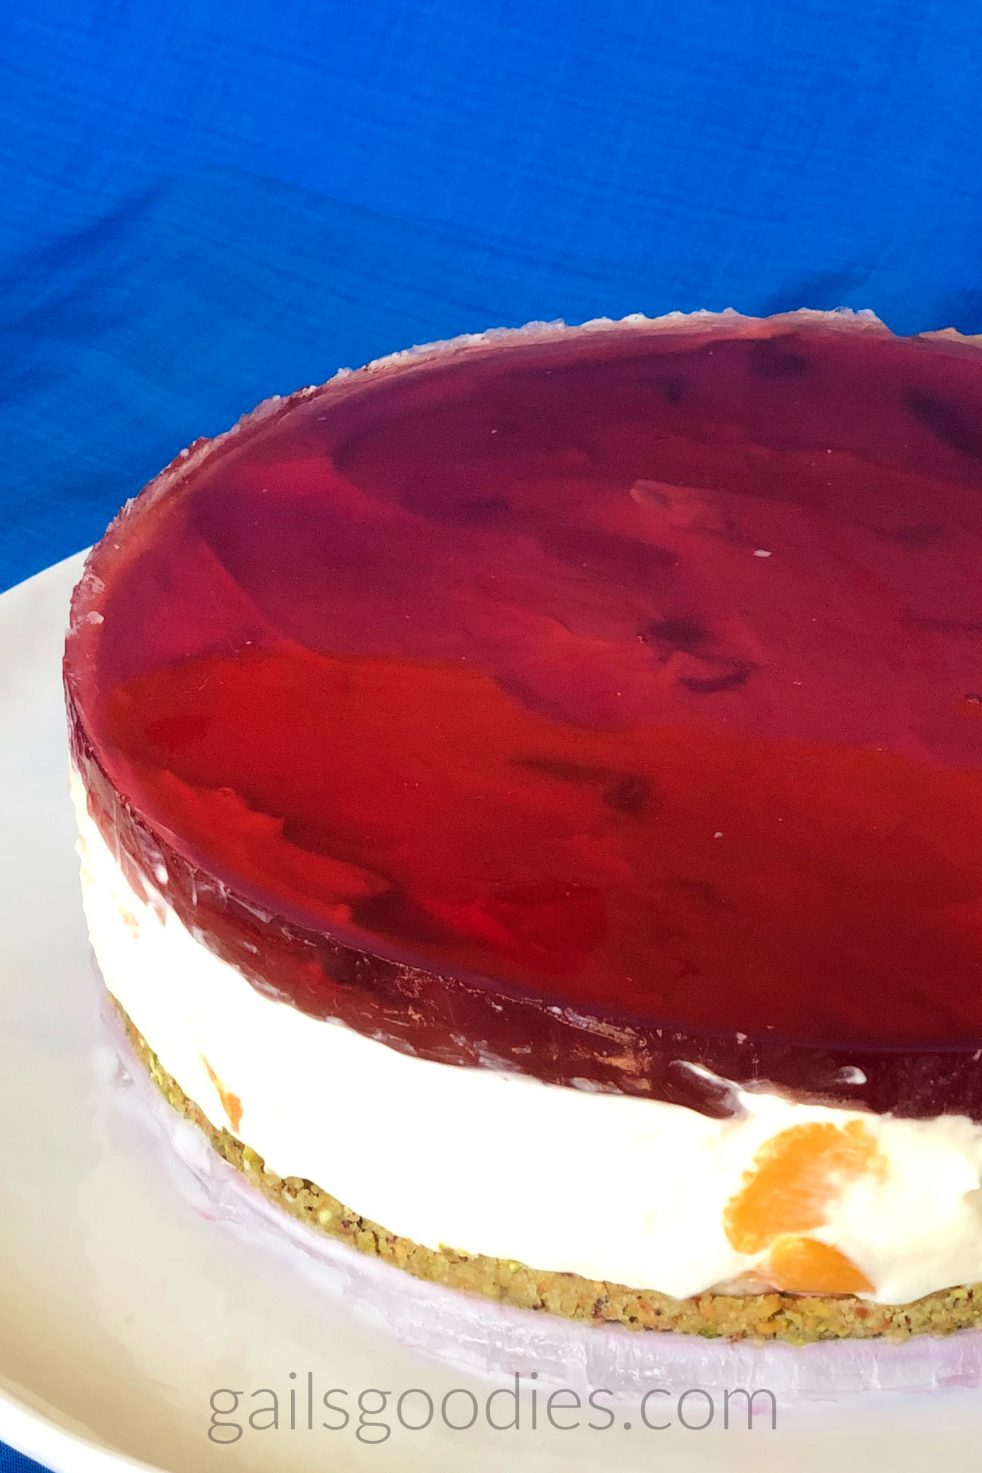 This is a view of the left half of a blackberry mead peach cheesecake. The cheesecake sits on a white plate and is viewed from above at about a 45 degree angle. Peach pieces and ripples in the creamy cheesecake below can be seen through the transparent raspberry red gelatin layer on top of the cake. Below the half inch thick gelatin layer there is a cream colored cheesecake. Peach chunks dot the creamy cheesecake in front and on the left side. The cookie crust at the bottom is tinged slightly green from the pistachios.